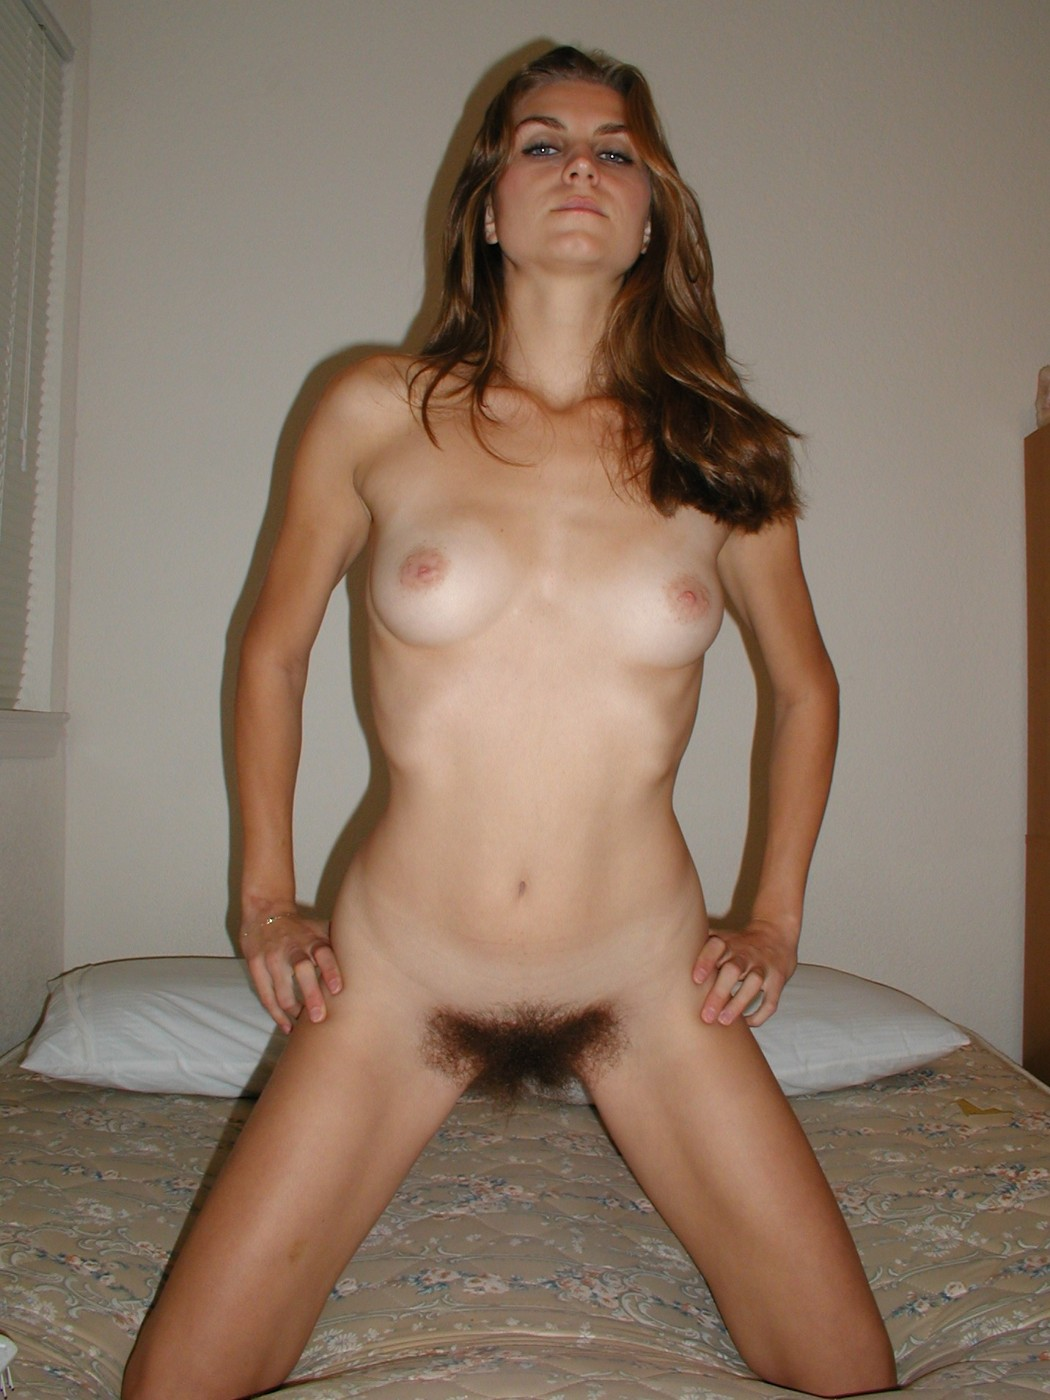 Think, Hairy mature women forced naked are absolutely